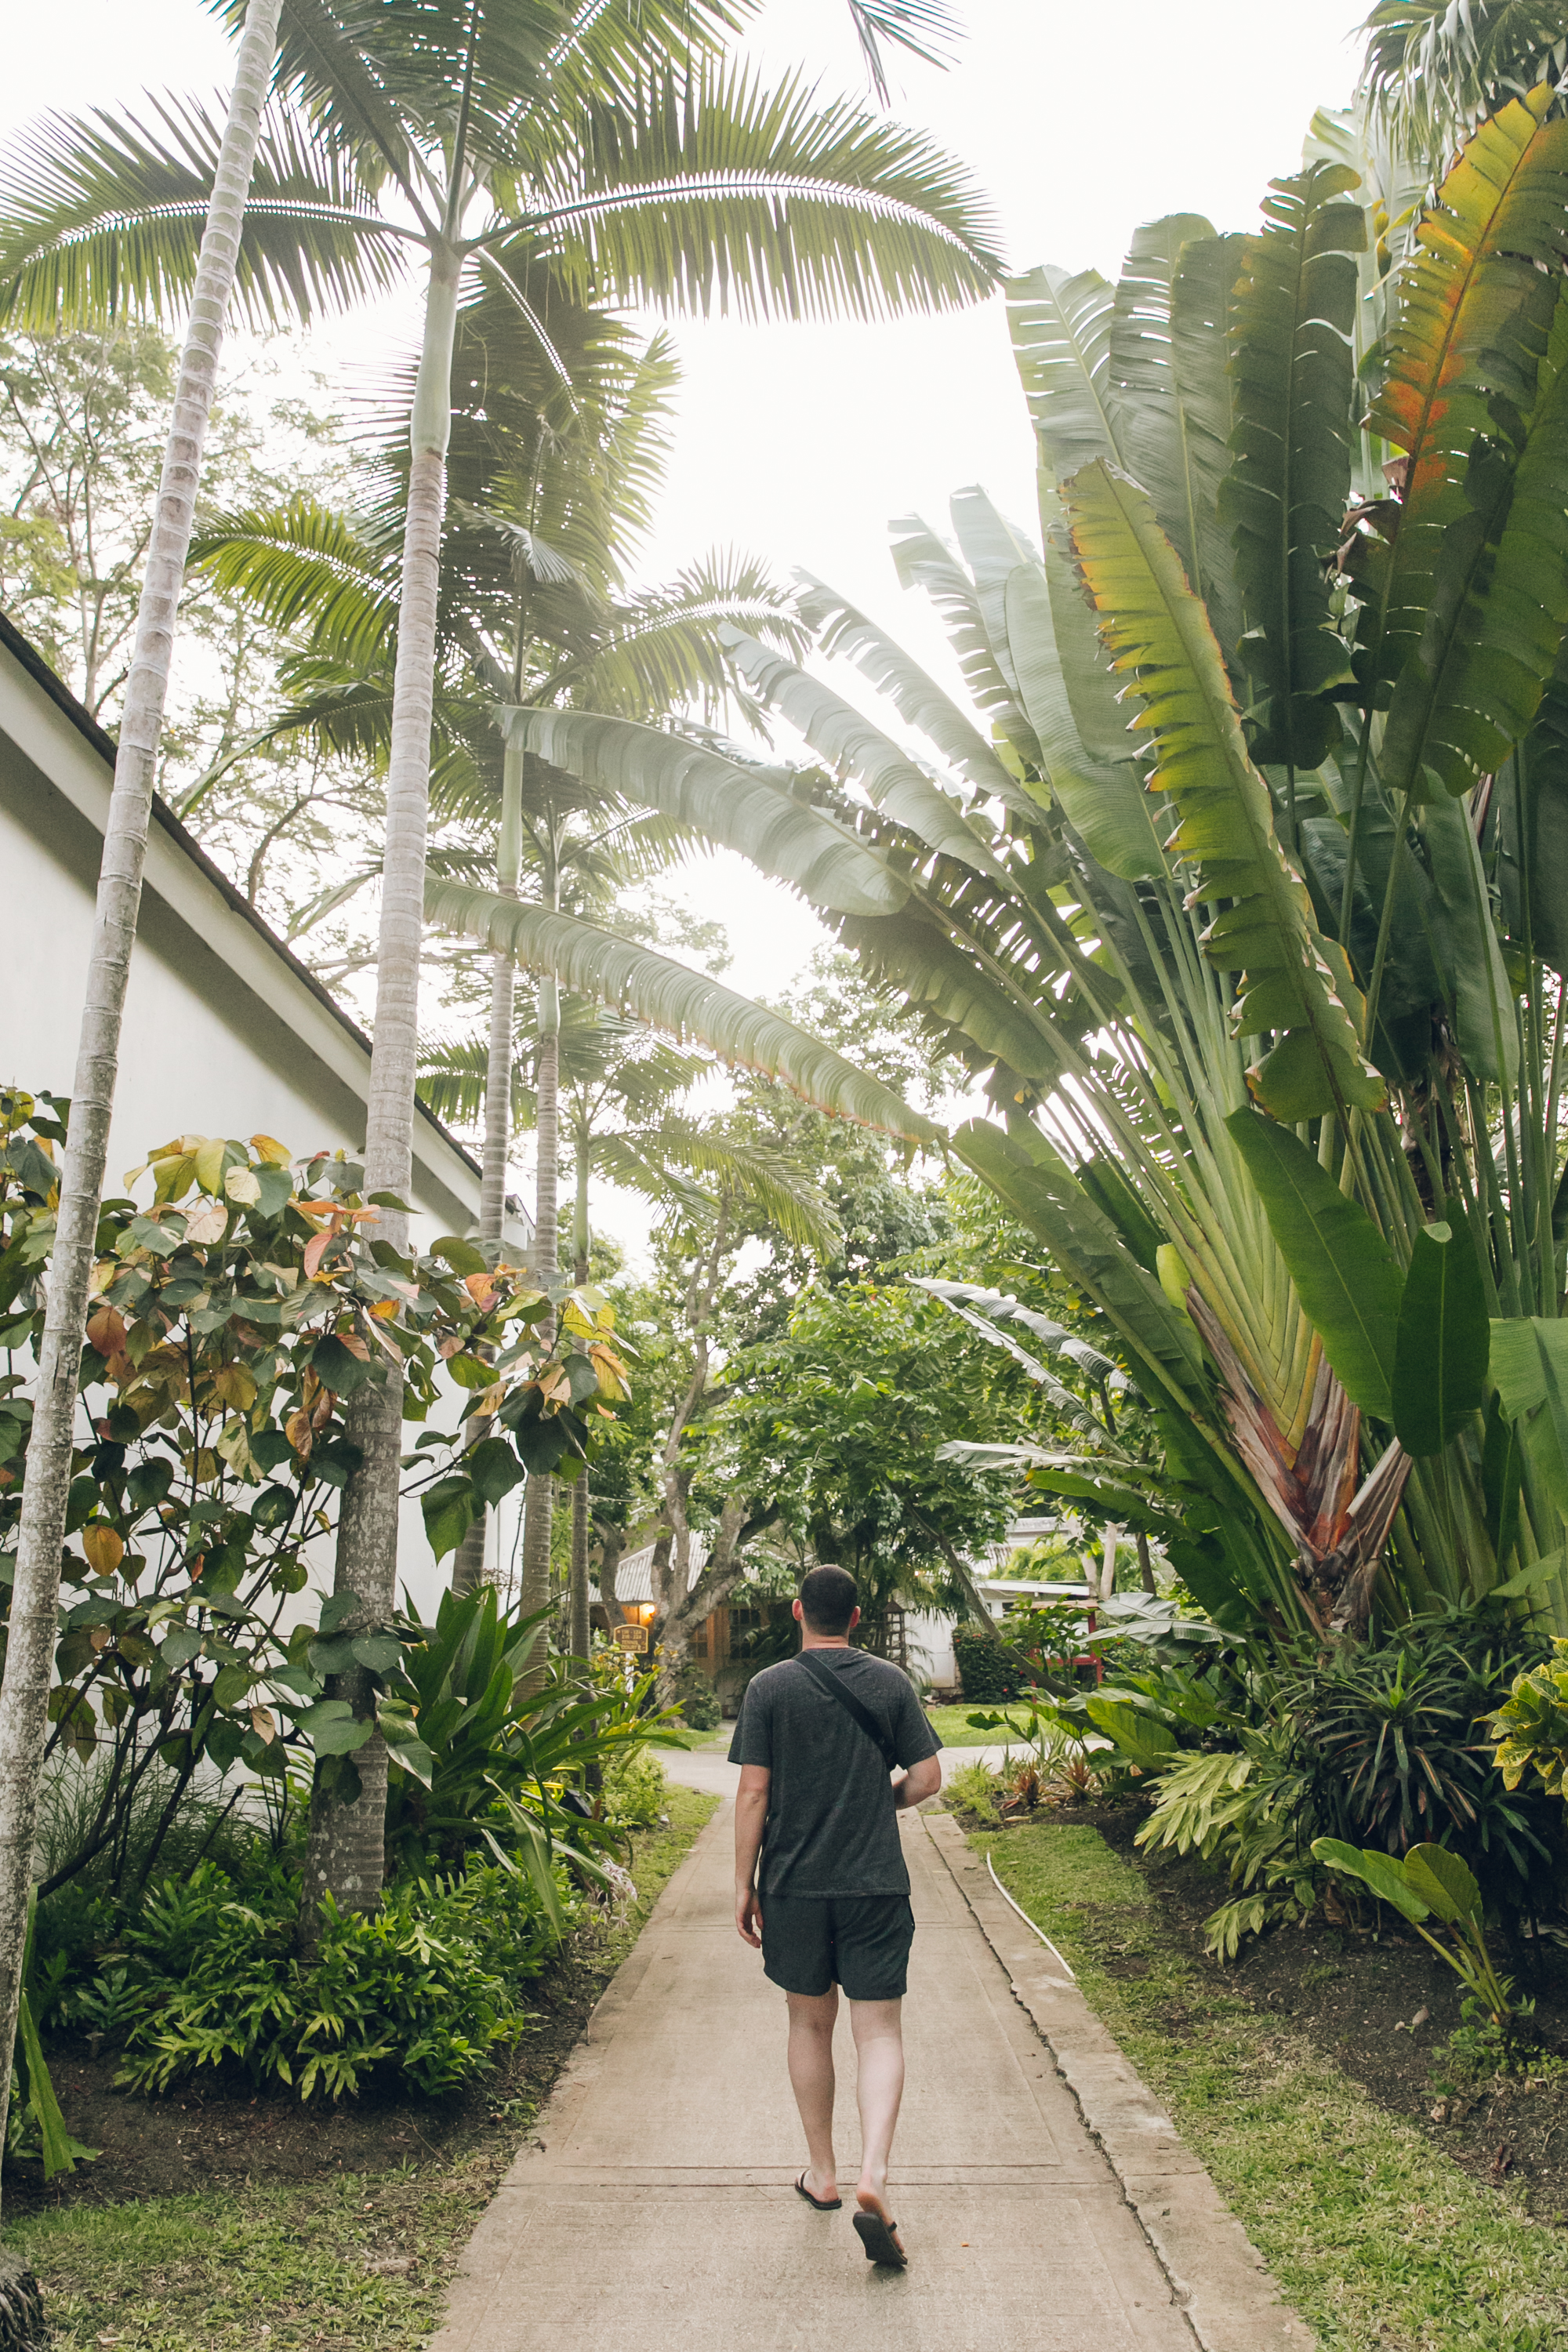 The tropical garden at Colony Club by Elegant Hotels in Barbados.